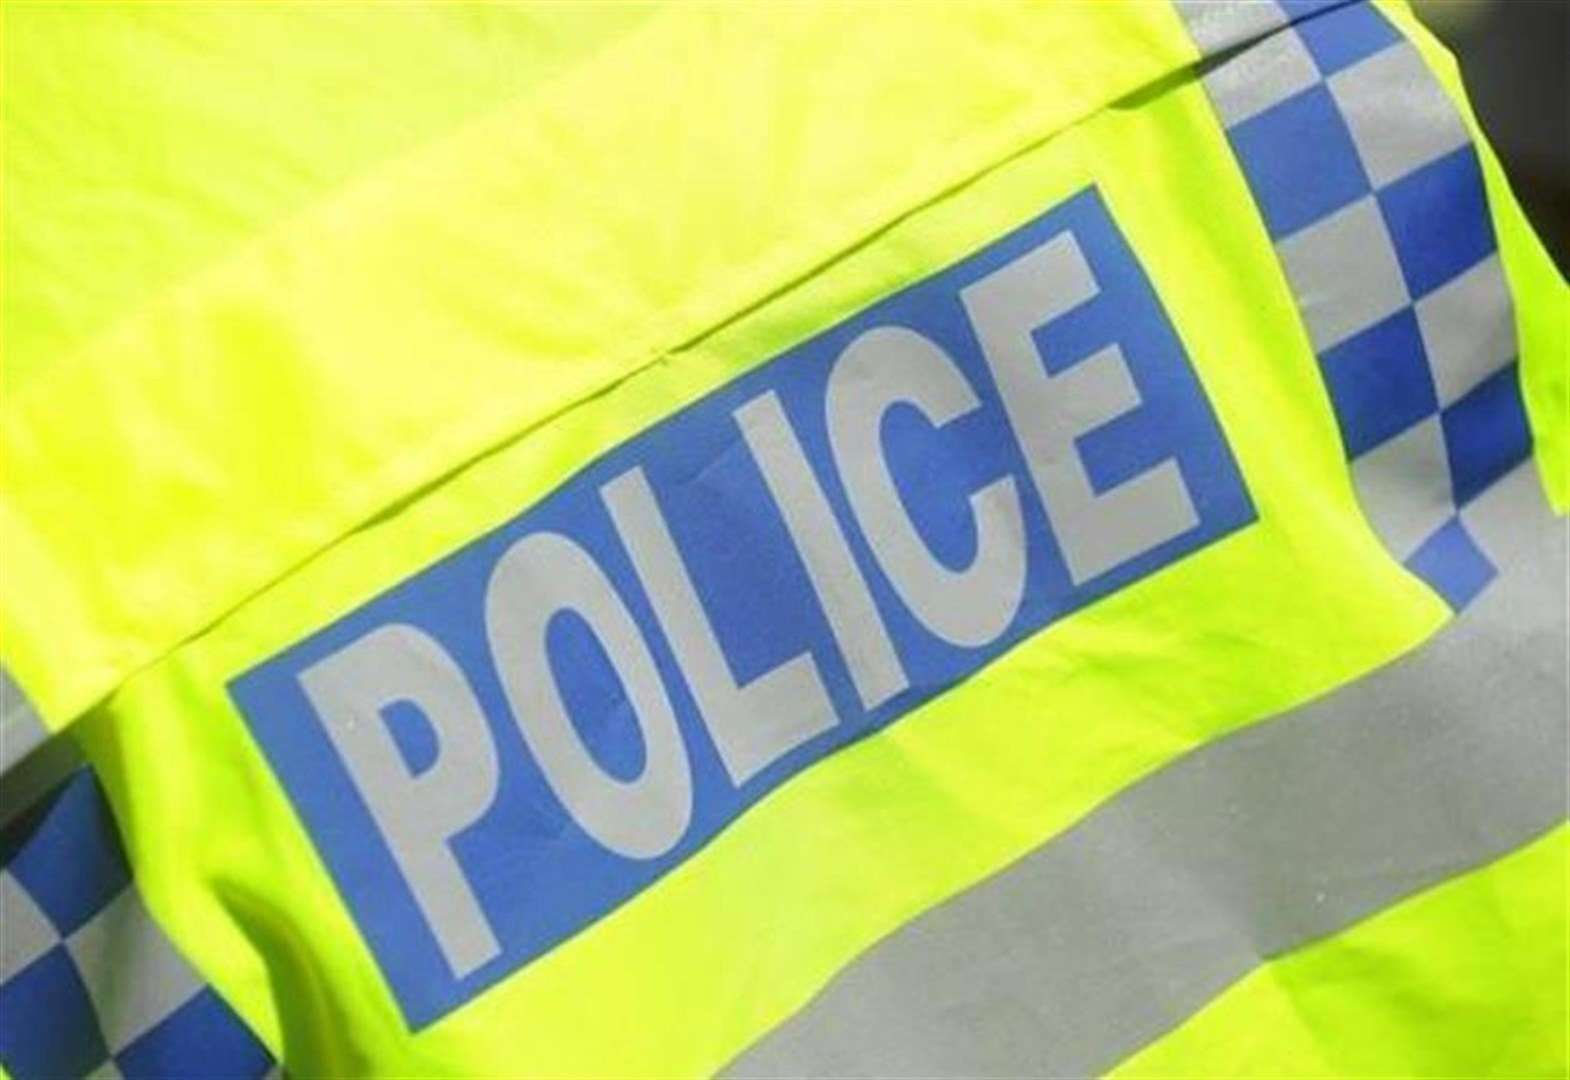 Sporle burglary appeal issued by Norfolk Police